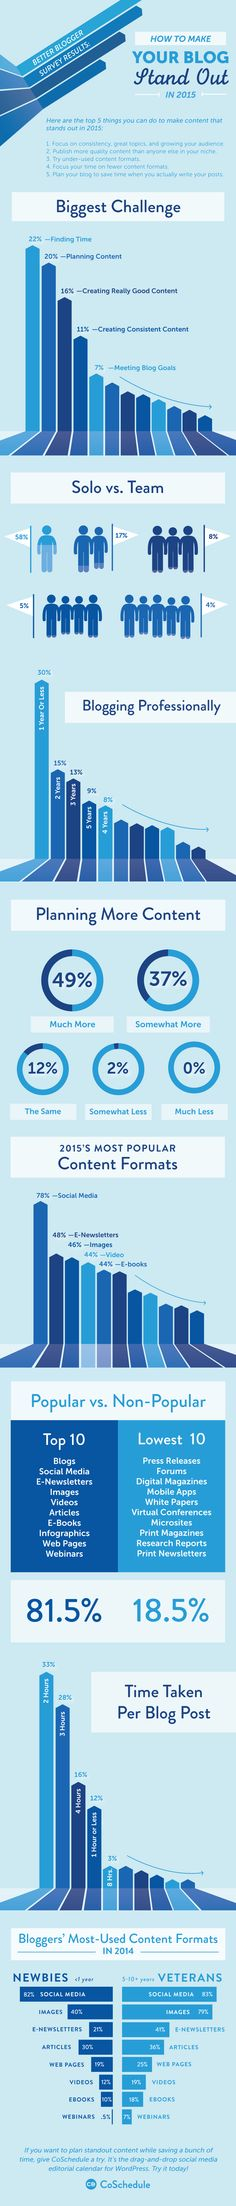 How to make your blog stand out #INFOGRAPHIC #SOCIALMEDIA